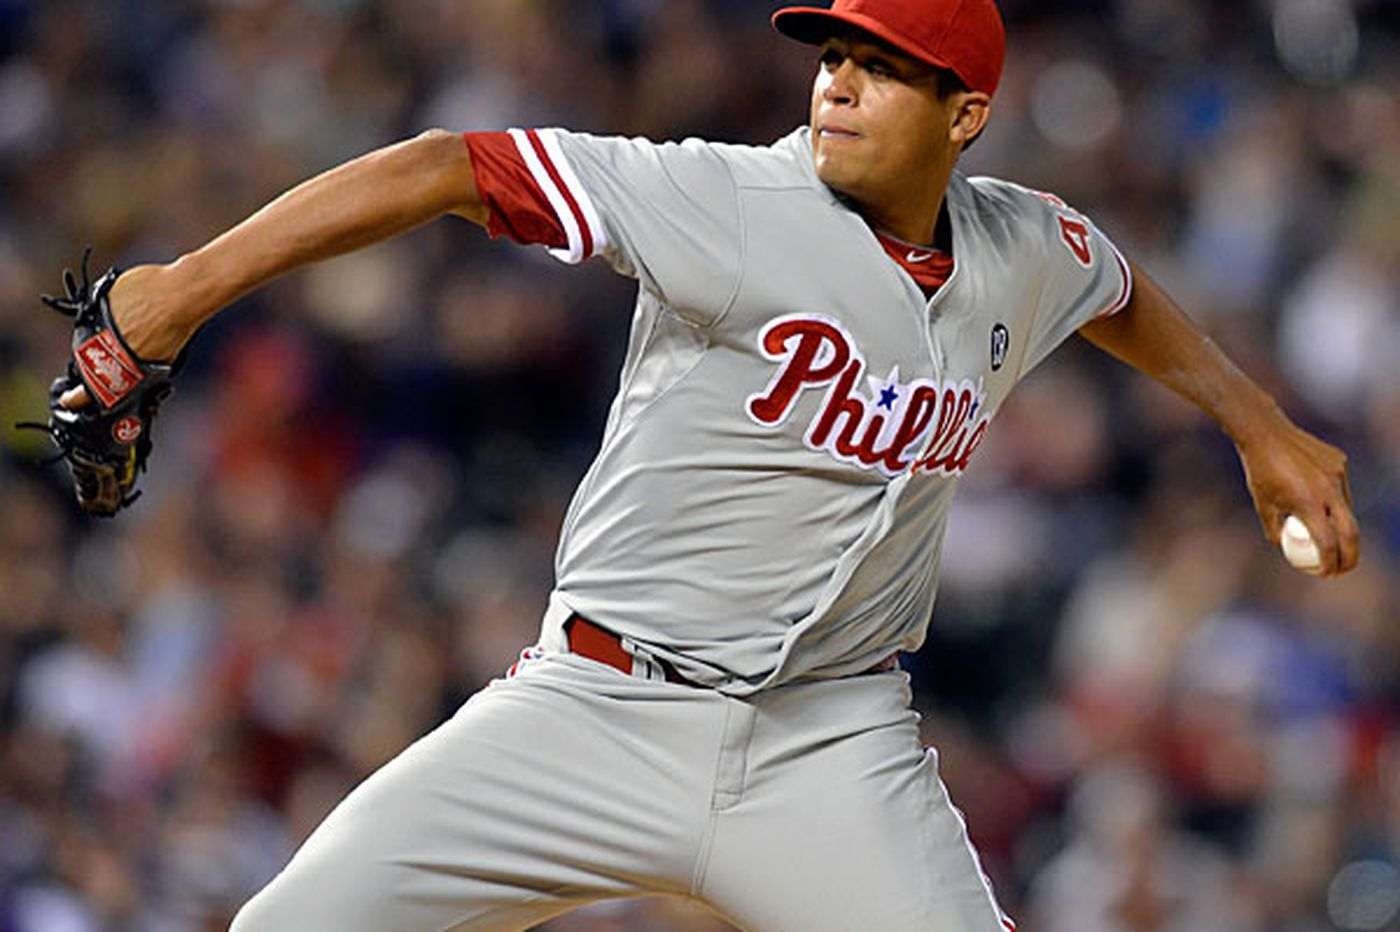 Inside the Phillies: Phils' Hollands already fashioning next career